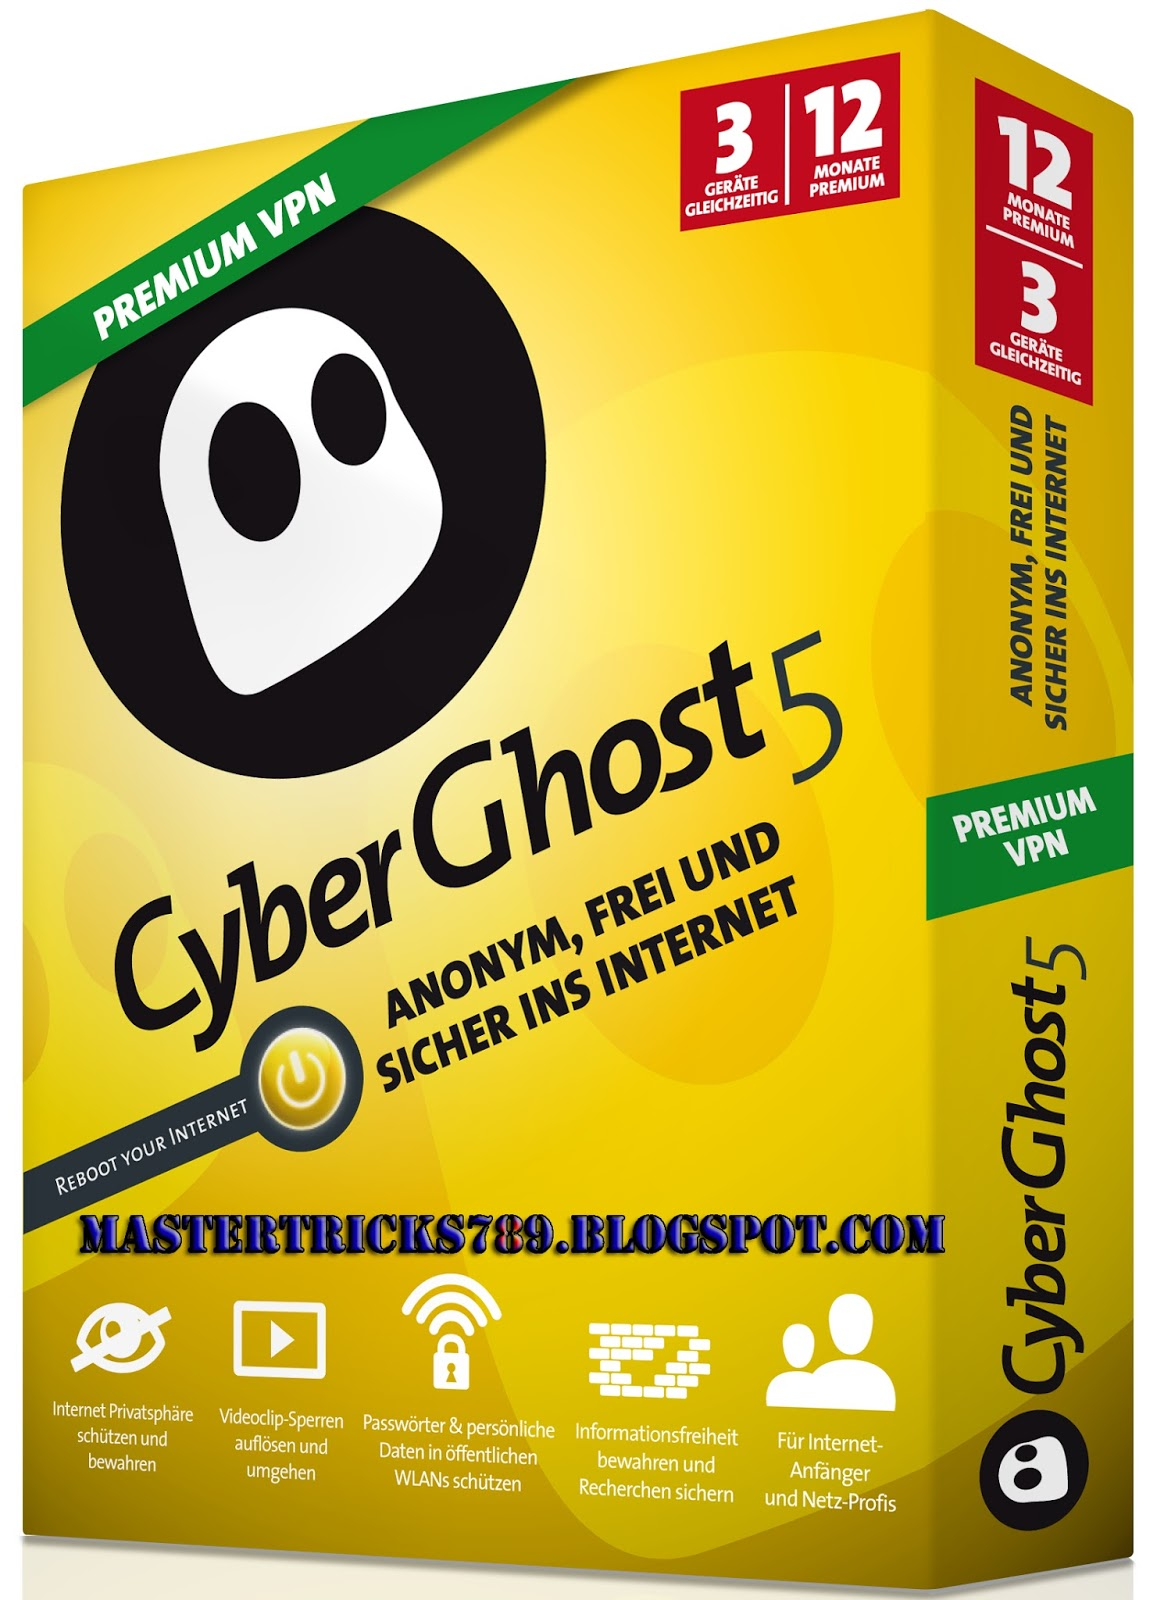 cyberghost 5 free trial download